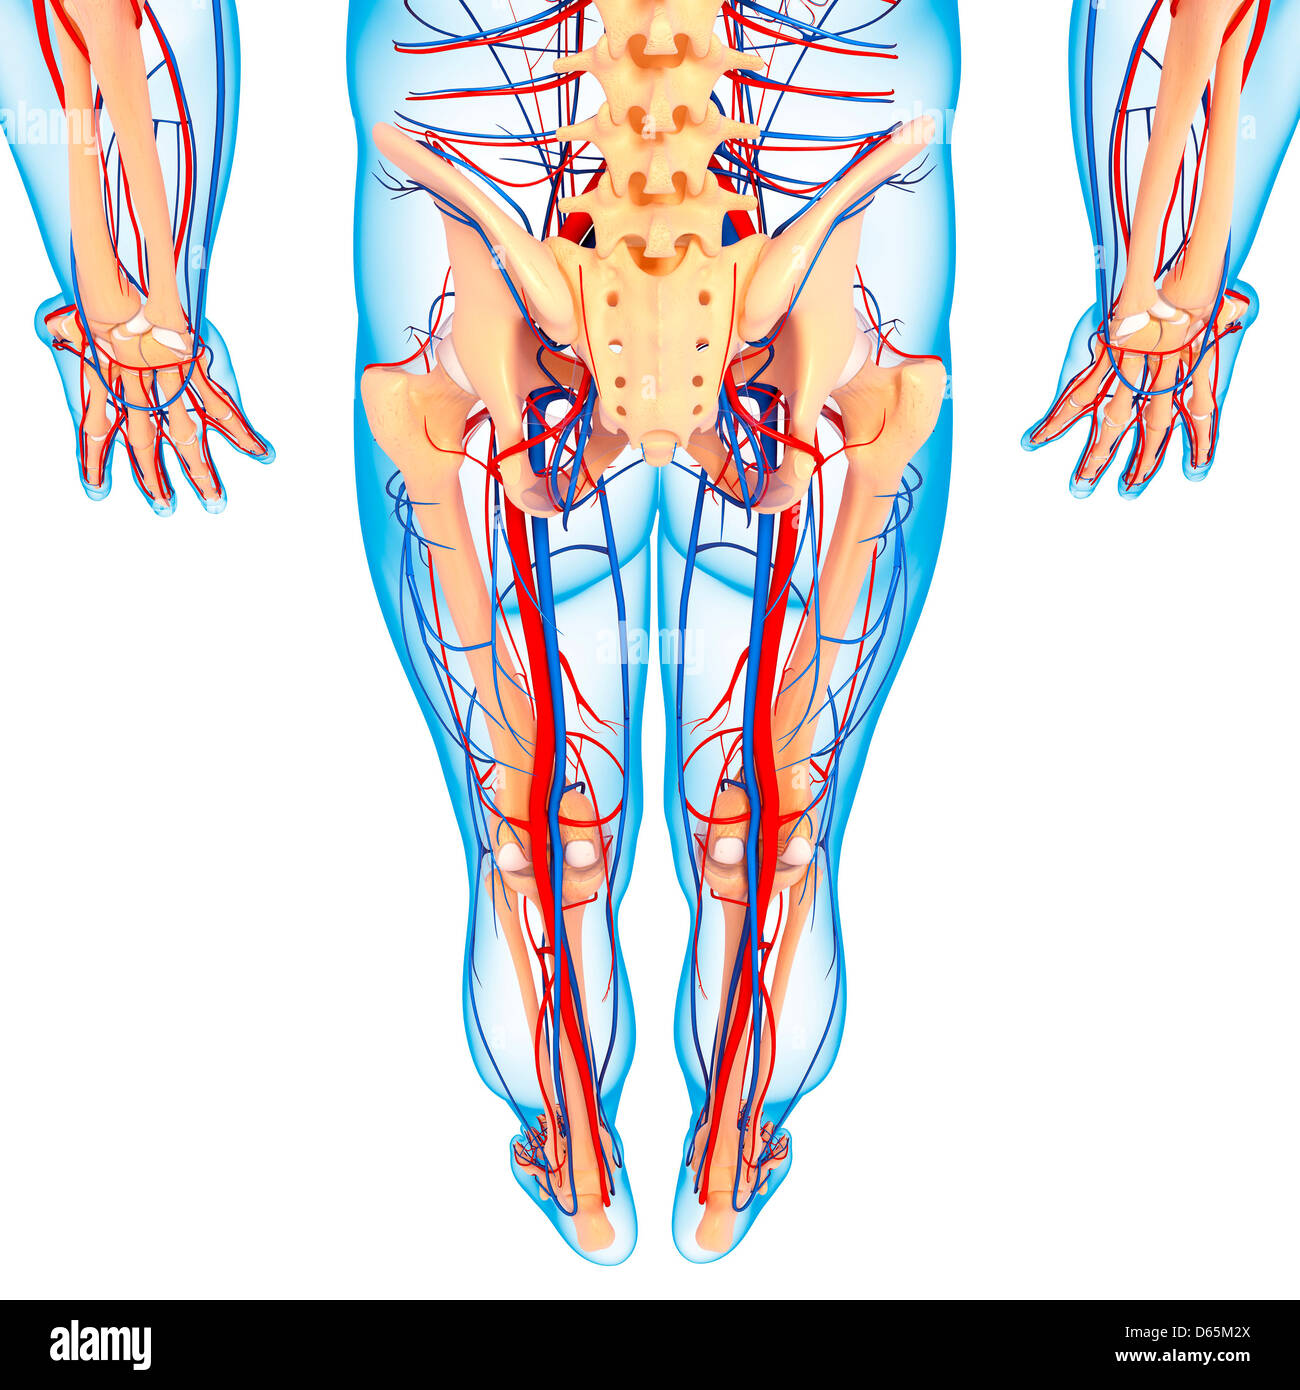 Lower Body Anatomy Artwork Stock Photo 55444562 Alamy